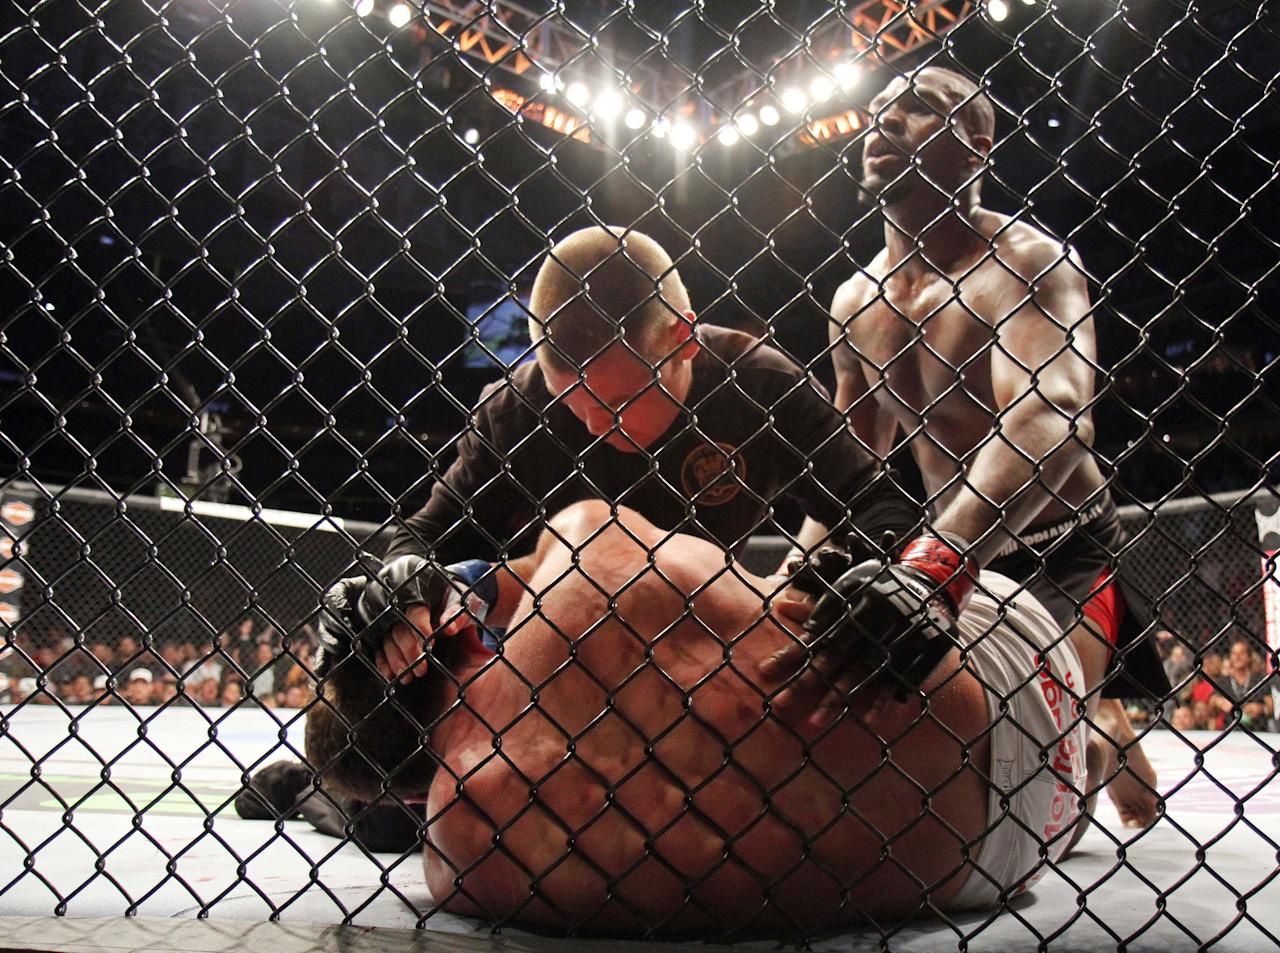 The referee stops the fight as Jon Jones defeats Chael Sonnen in their UFC 159 Mixed Martial Arts light heavyweight title bout in Newark, N.J., Saturday, April 27,2013. Jones retained his title via first round TKO. (AP Photo/Gregory Payan)